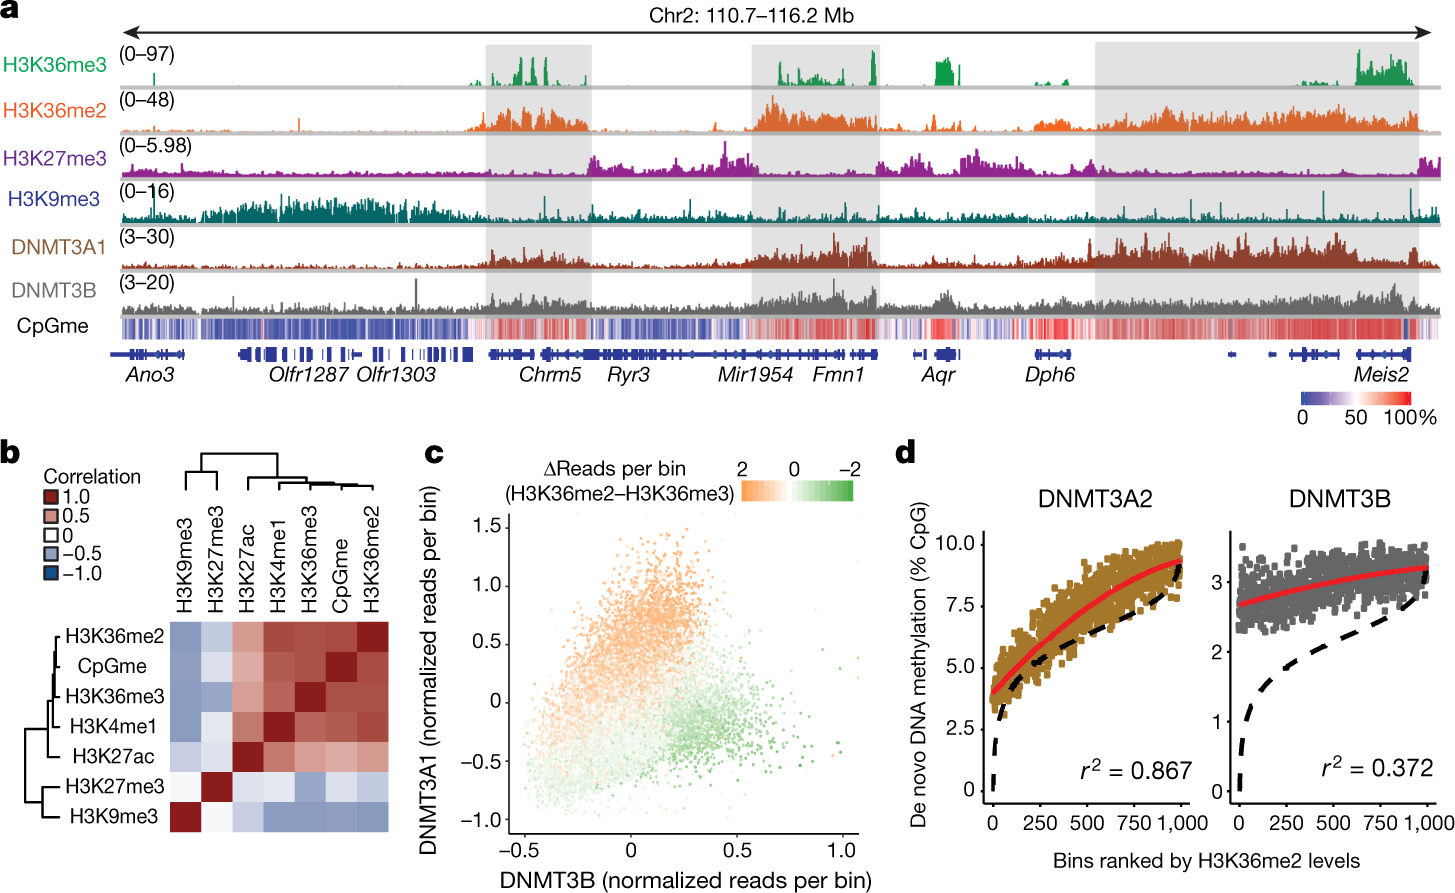 The histone mark H3K36me2 recruits DNMT3A and shapes the intergenic DN